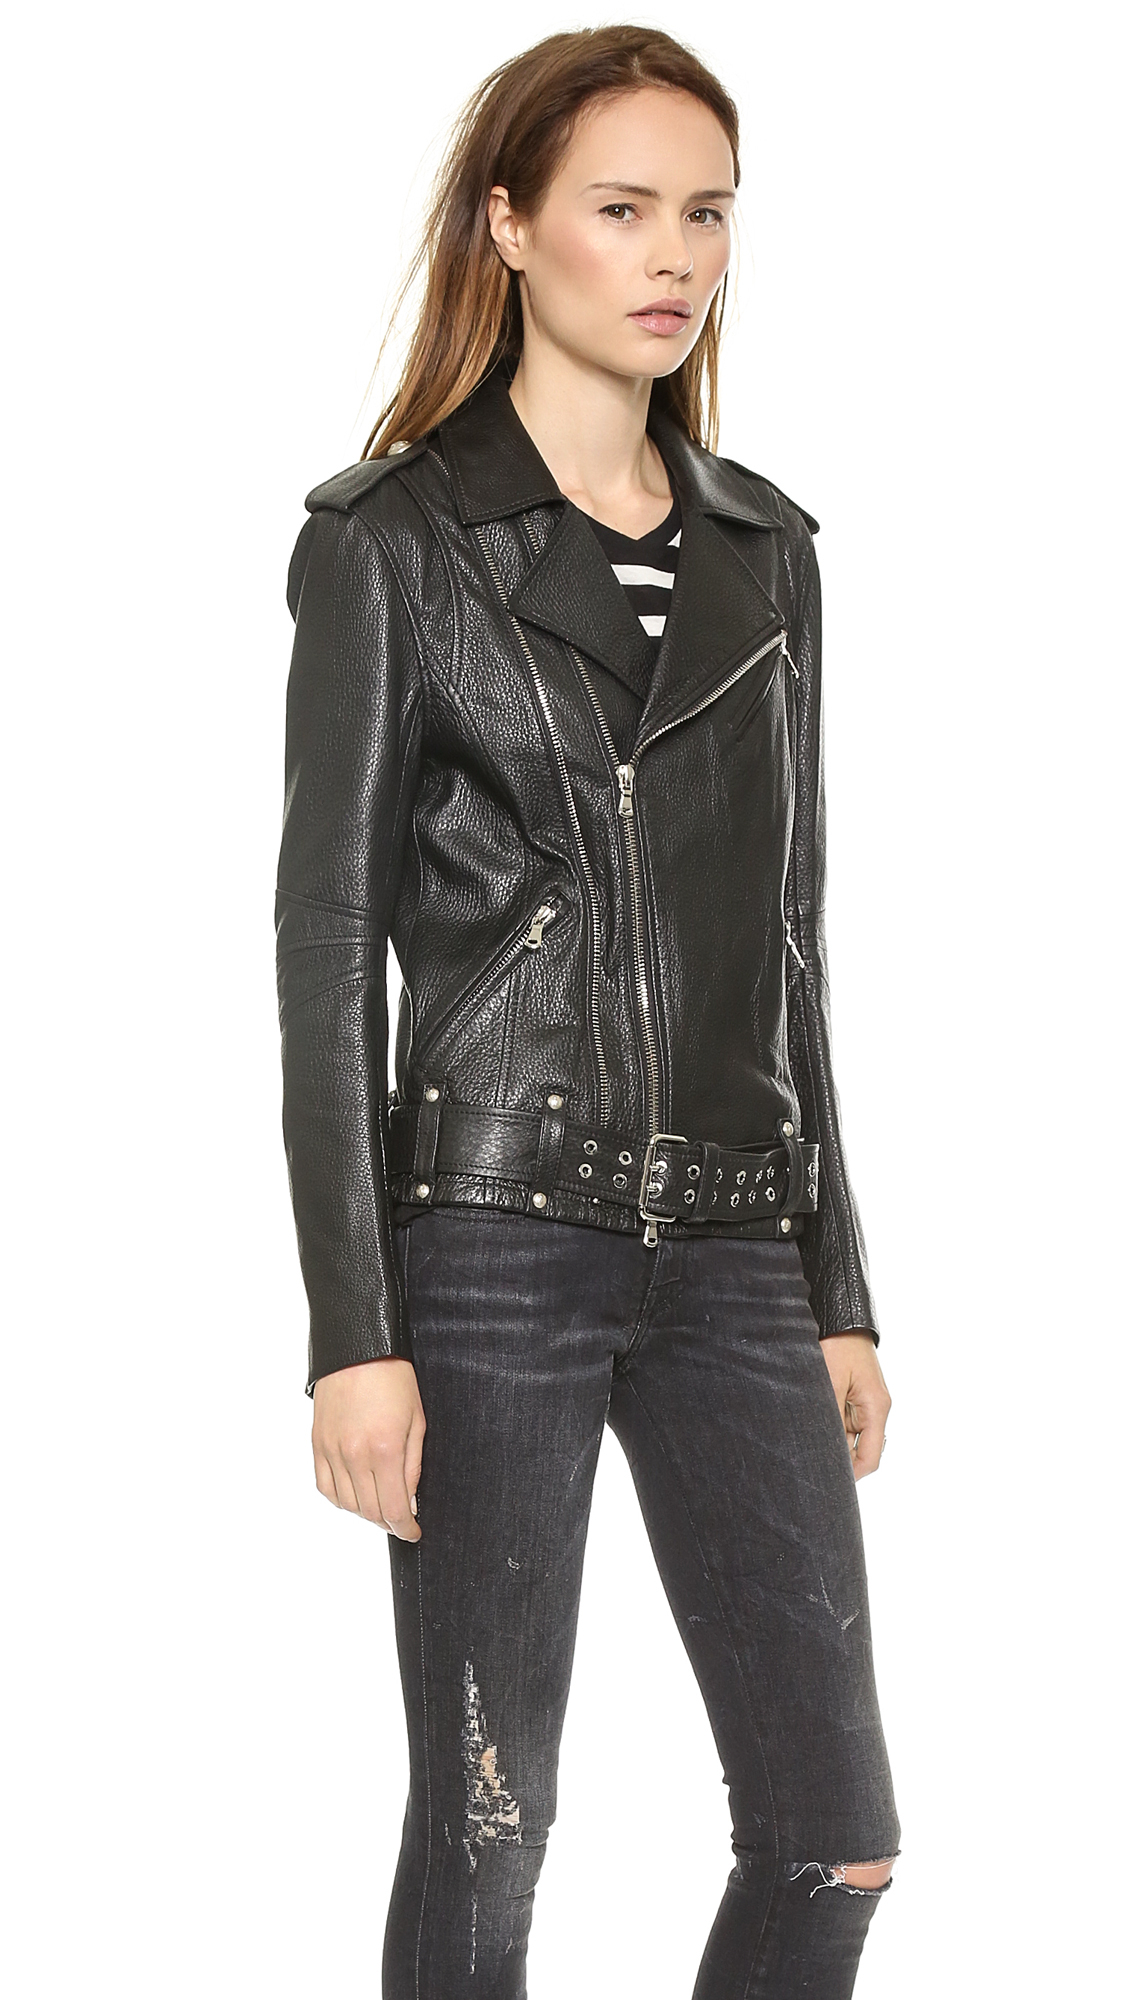 Balmain Leather Jacket | Balmain Mens Leather Jacket | Balmain Women Jeans